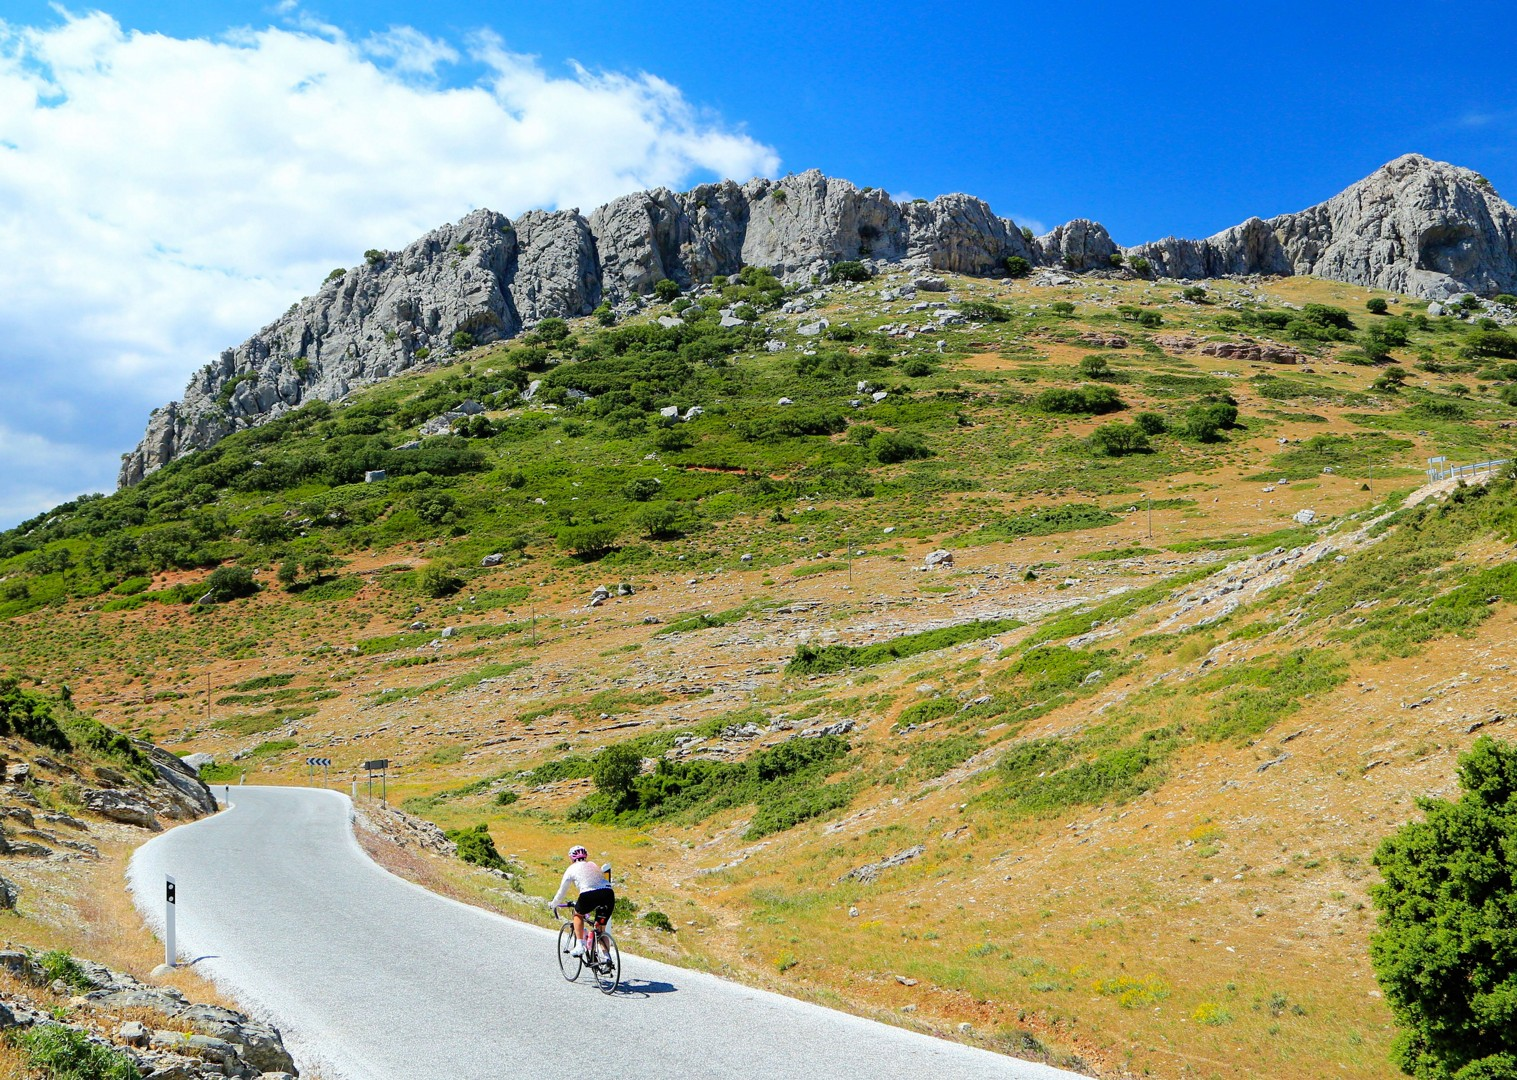 road-cycling-in-basque-country-to-andalucia.jpg - Spain - Basque Country to Andalucia - North to South - 21 Day - Guided Road Cycling Holiday - Road Cycling